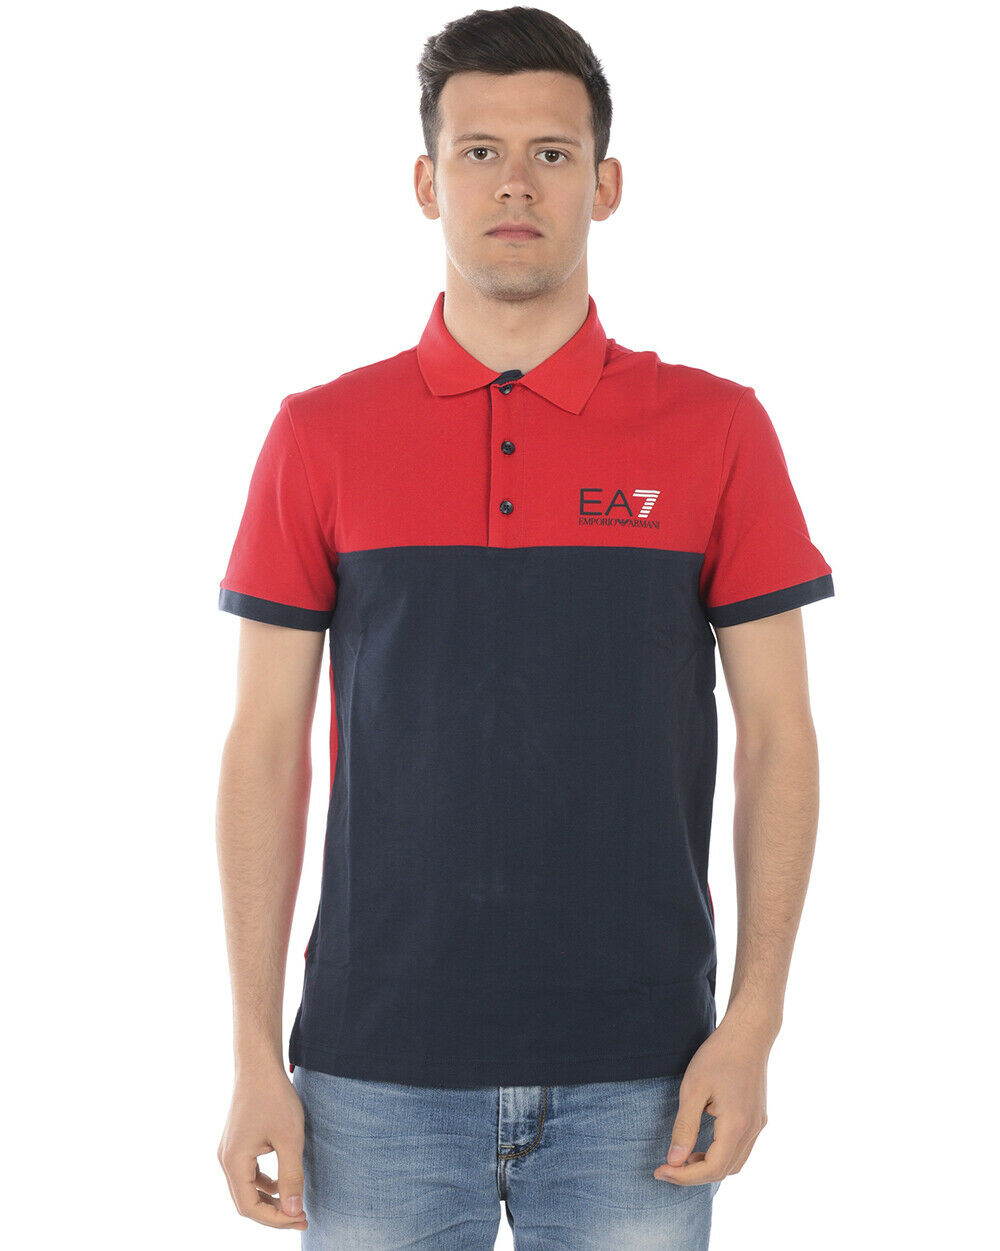 Emporio Armani Ea7 Polo Shirt Cotton Man rot 3GPF04 PJ61Z 1450 Sz. S PUT OFFER